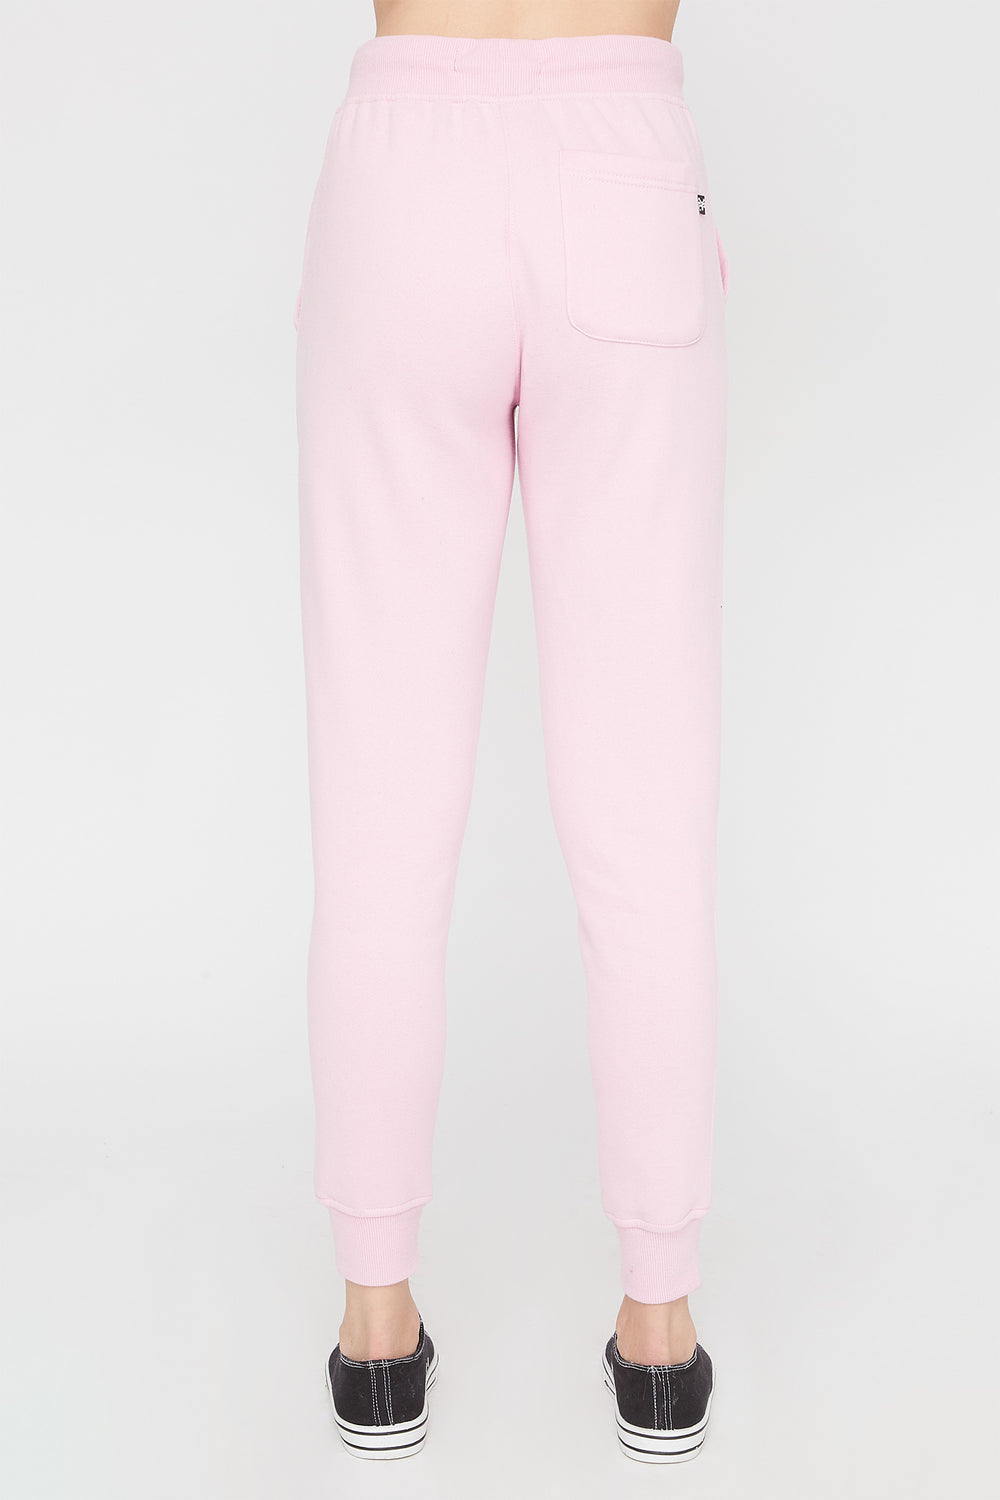 Zoo York Womens Embroidered Pastel Logo Jogger Light Pink